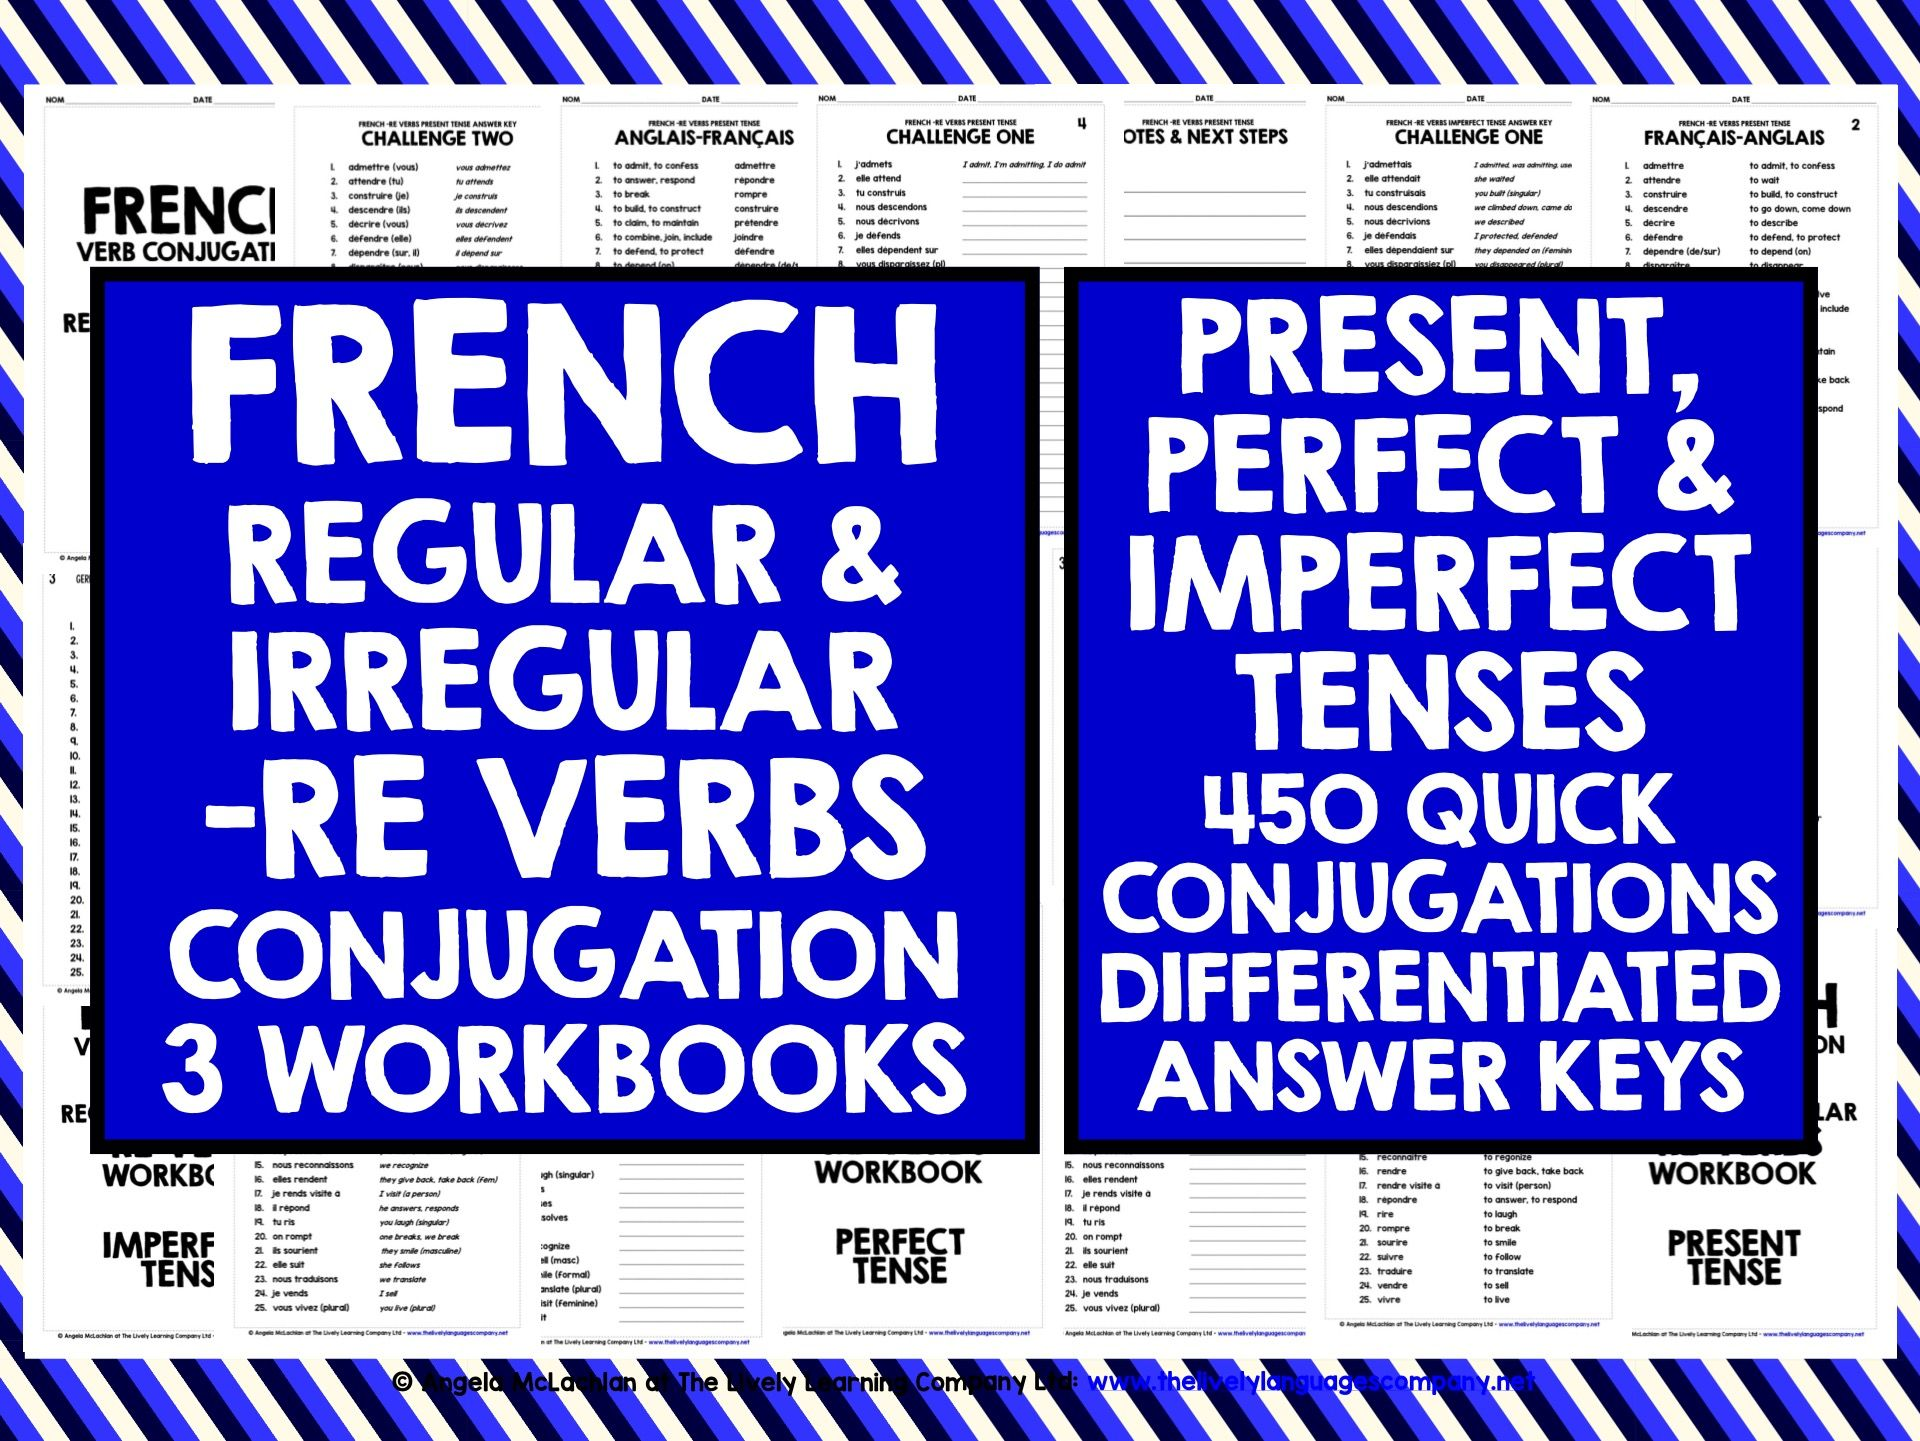 FRENCH VERBS: FRENCH -RE VERBS CONJUGATION PRACTICE: PRESENT, PERFECT & IMPERFECT TENSE